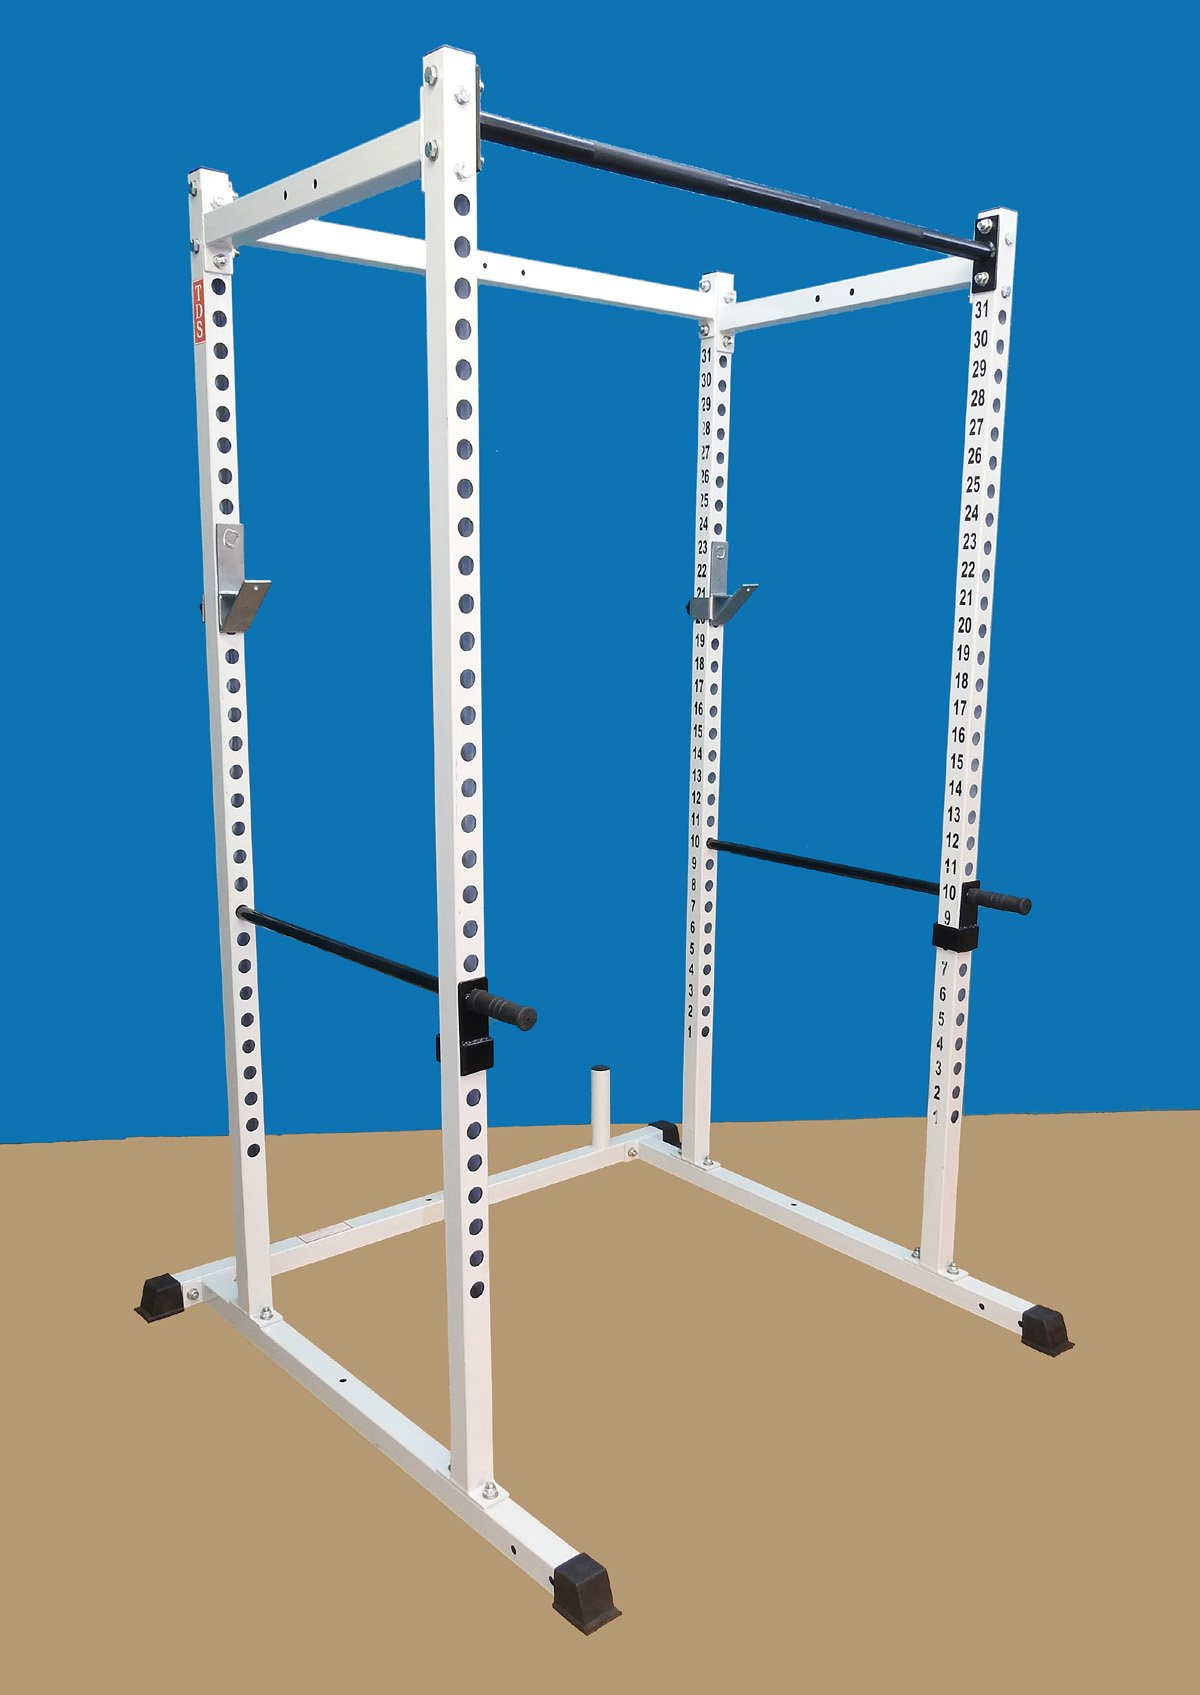 Power rack 1000lb Rated. 2 Inch 11 Gauge Sq. Tube with 1 inch holes. 2 inch hole centers for fine adjustment with bold letters. Designed to add variety of attachments. 1000lb rated J Hooks